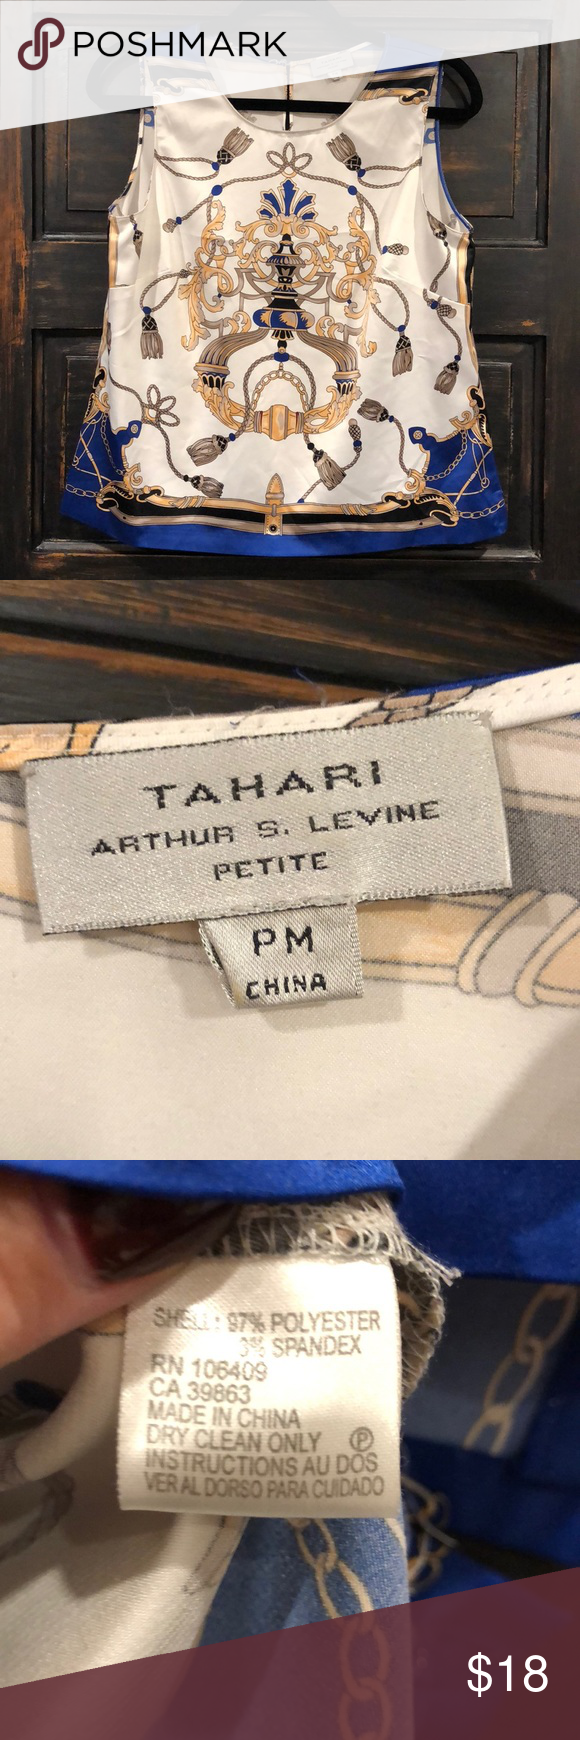 c2f756669e4 Arthur S Levine Tahari Boss Lady Satin shirt Lovely Satin shirt reminiscent  of Chanel and Gucci. Great for work. Would look stunning under a blazer.